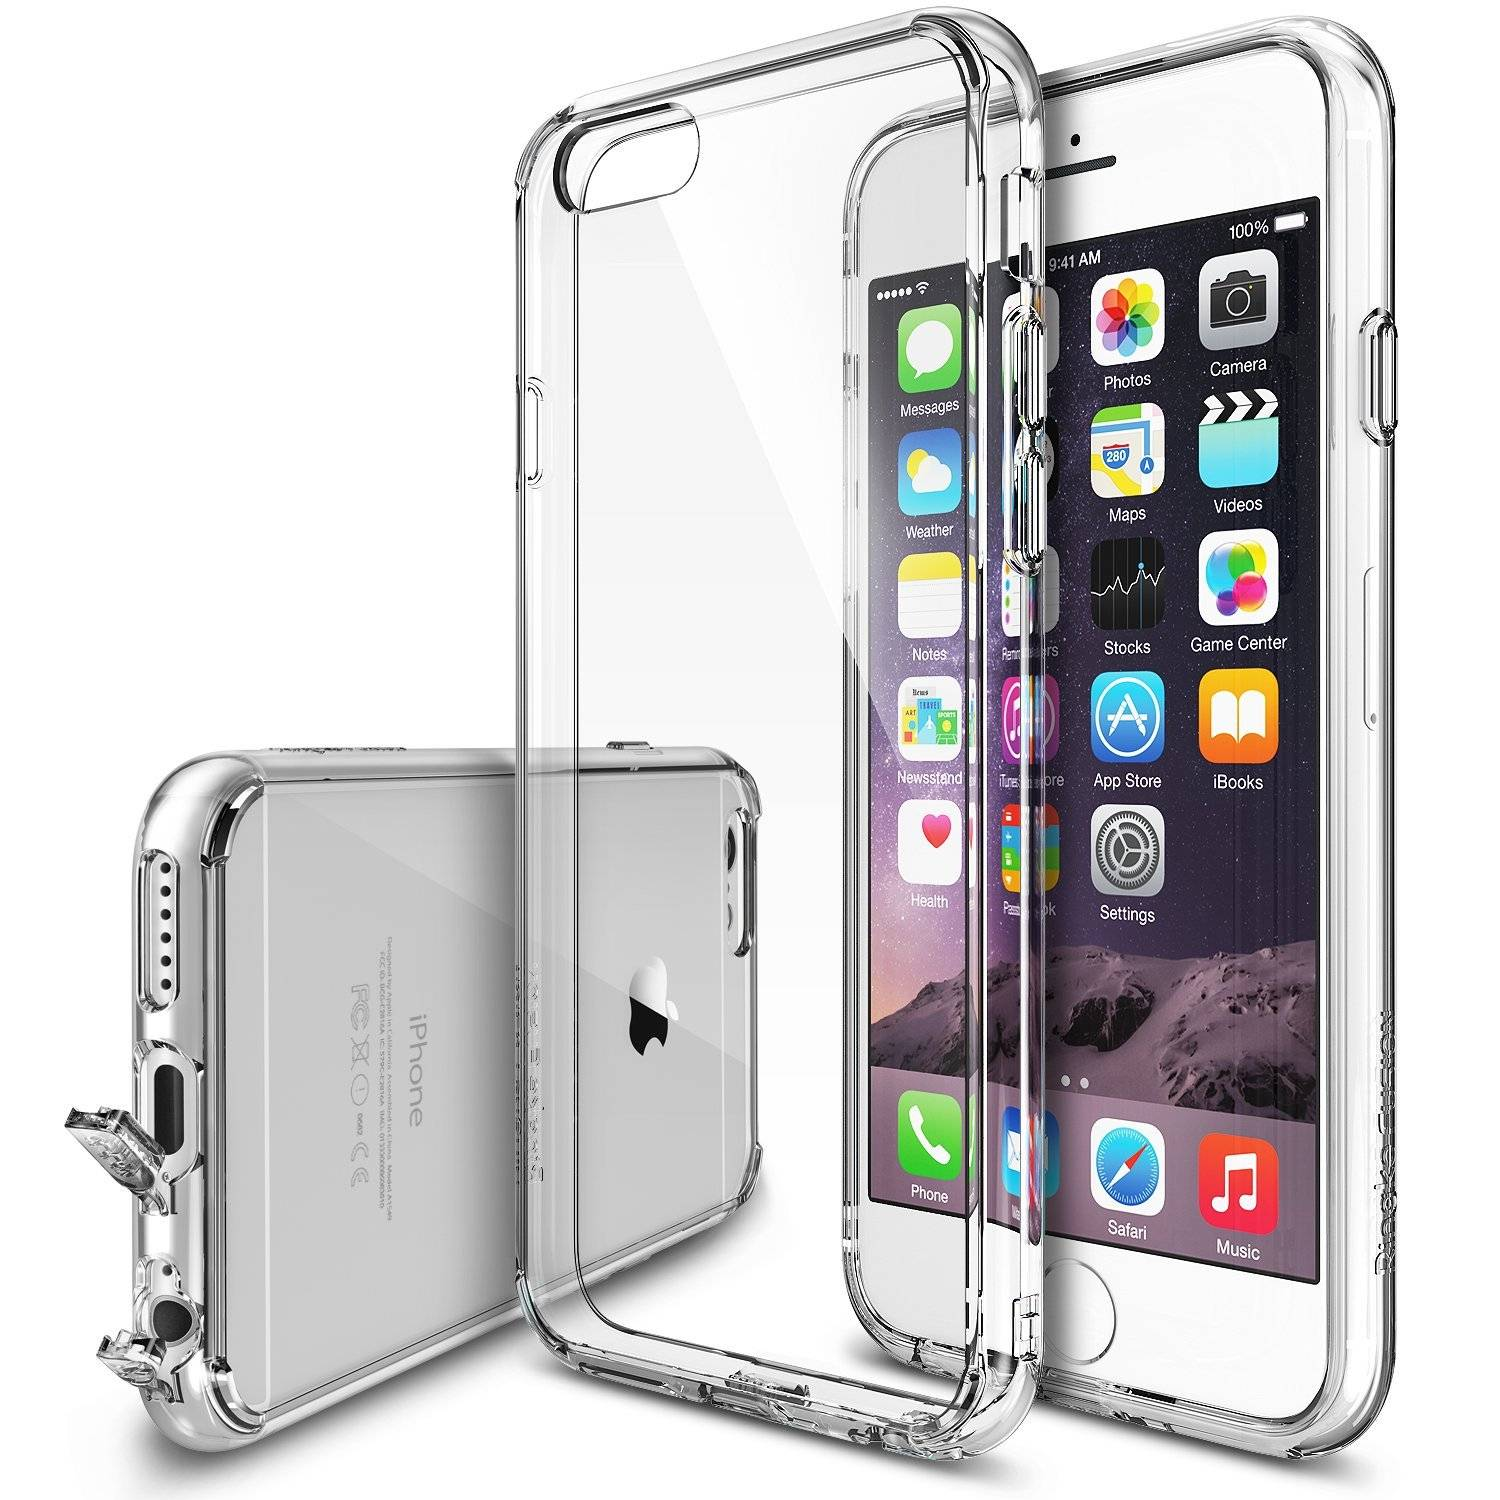 Ringke Fusion iPhone 6/6+ case PC bumper Clear Back Case